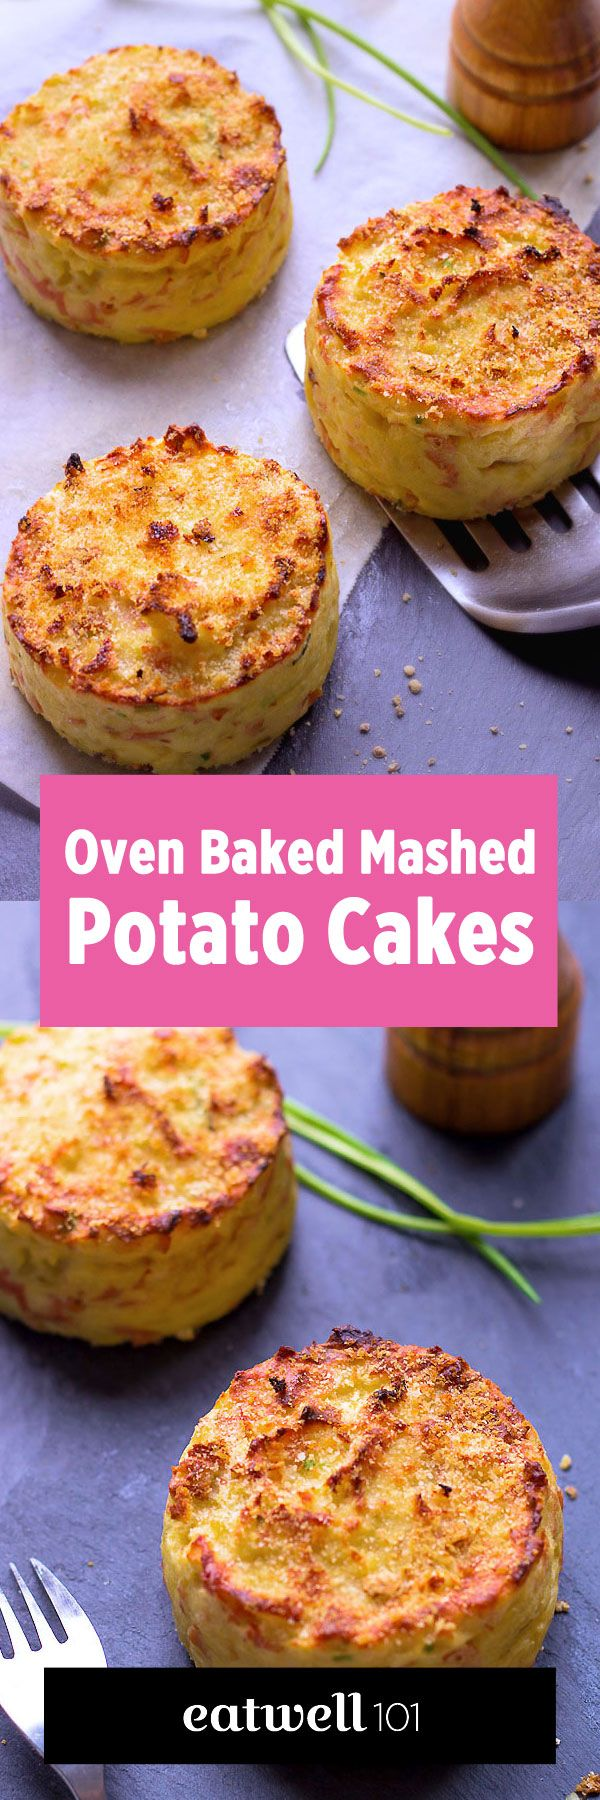 honest earth mashed potatoes instructions